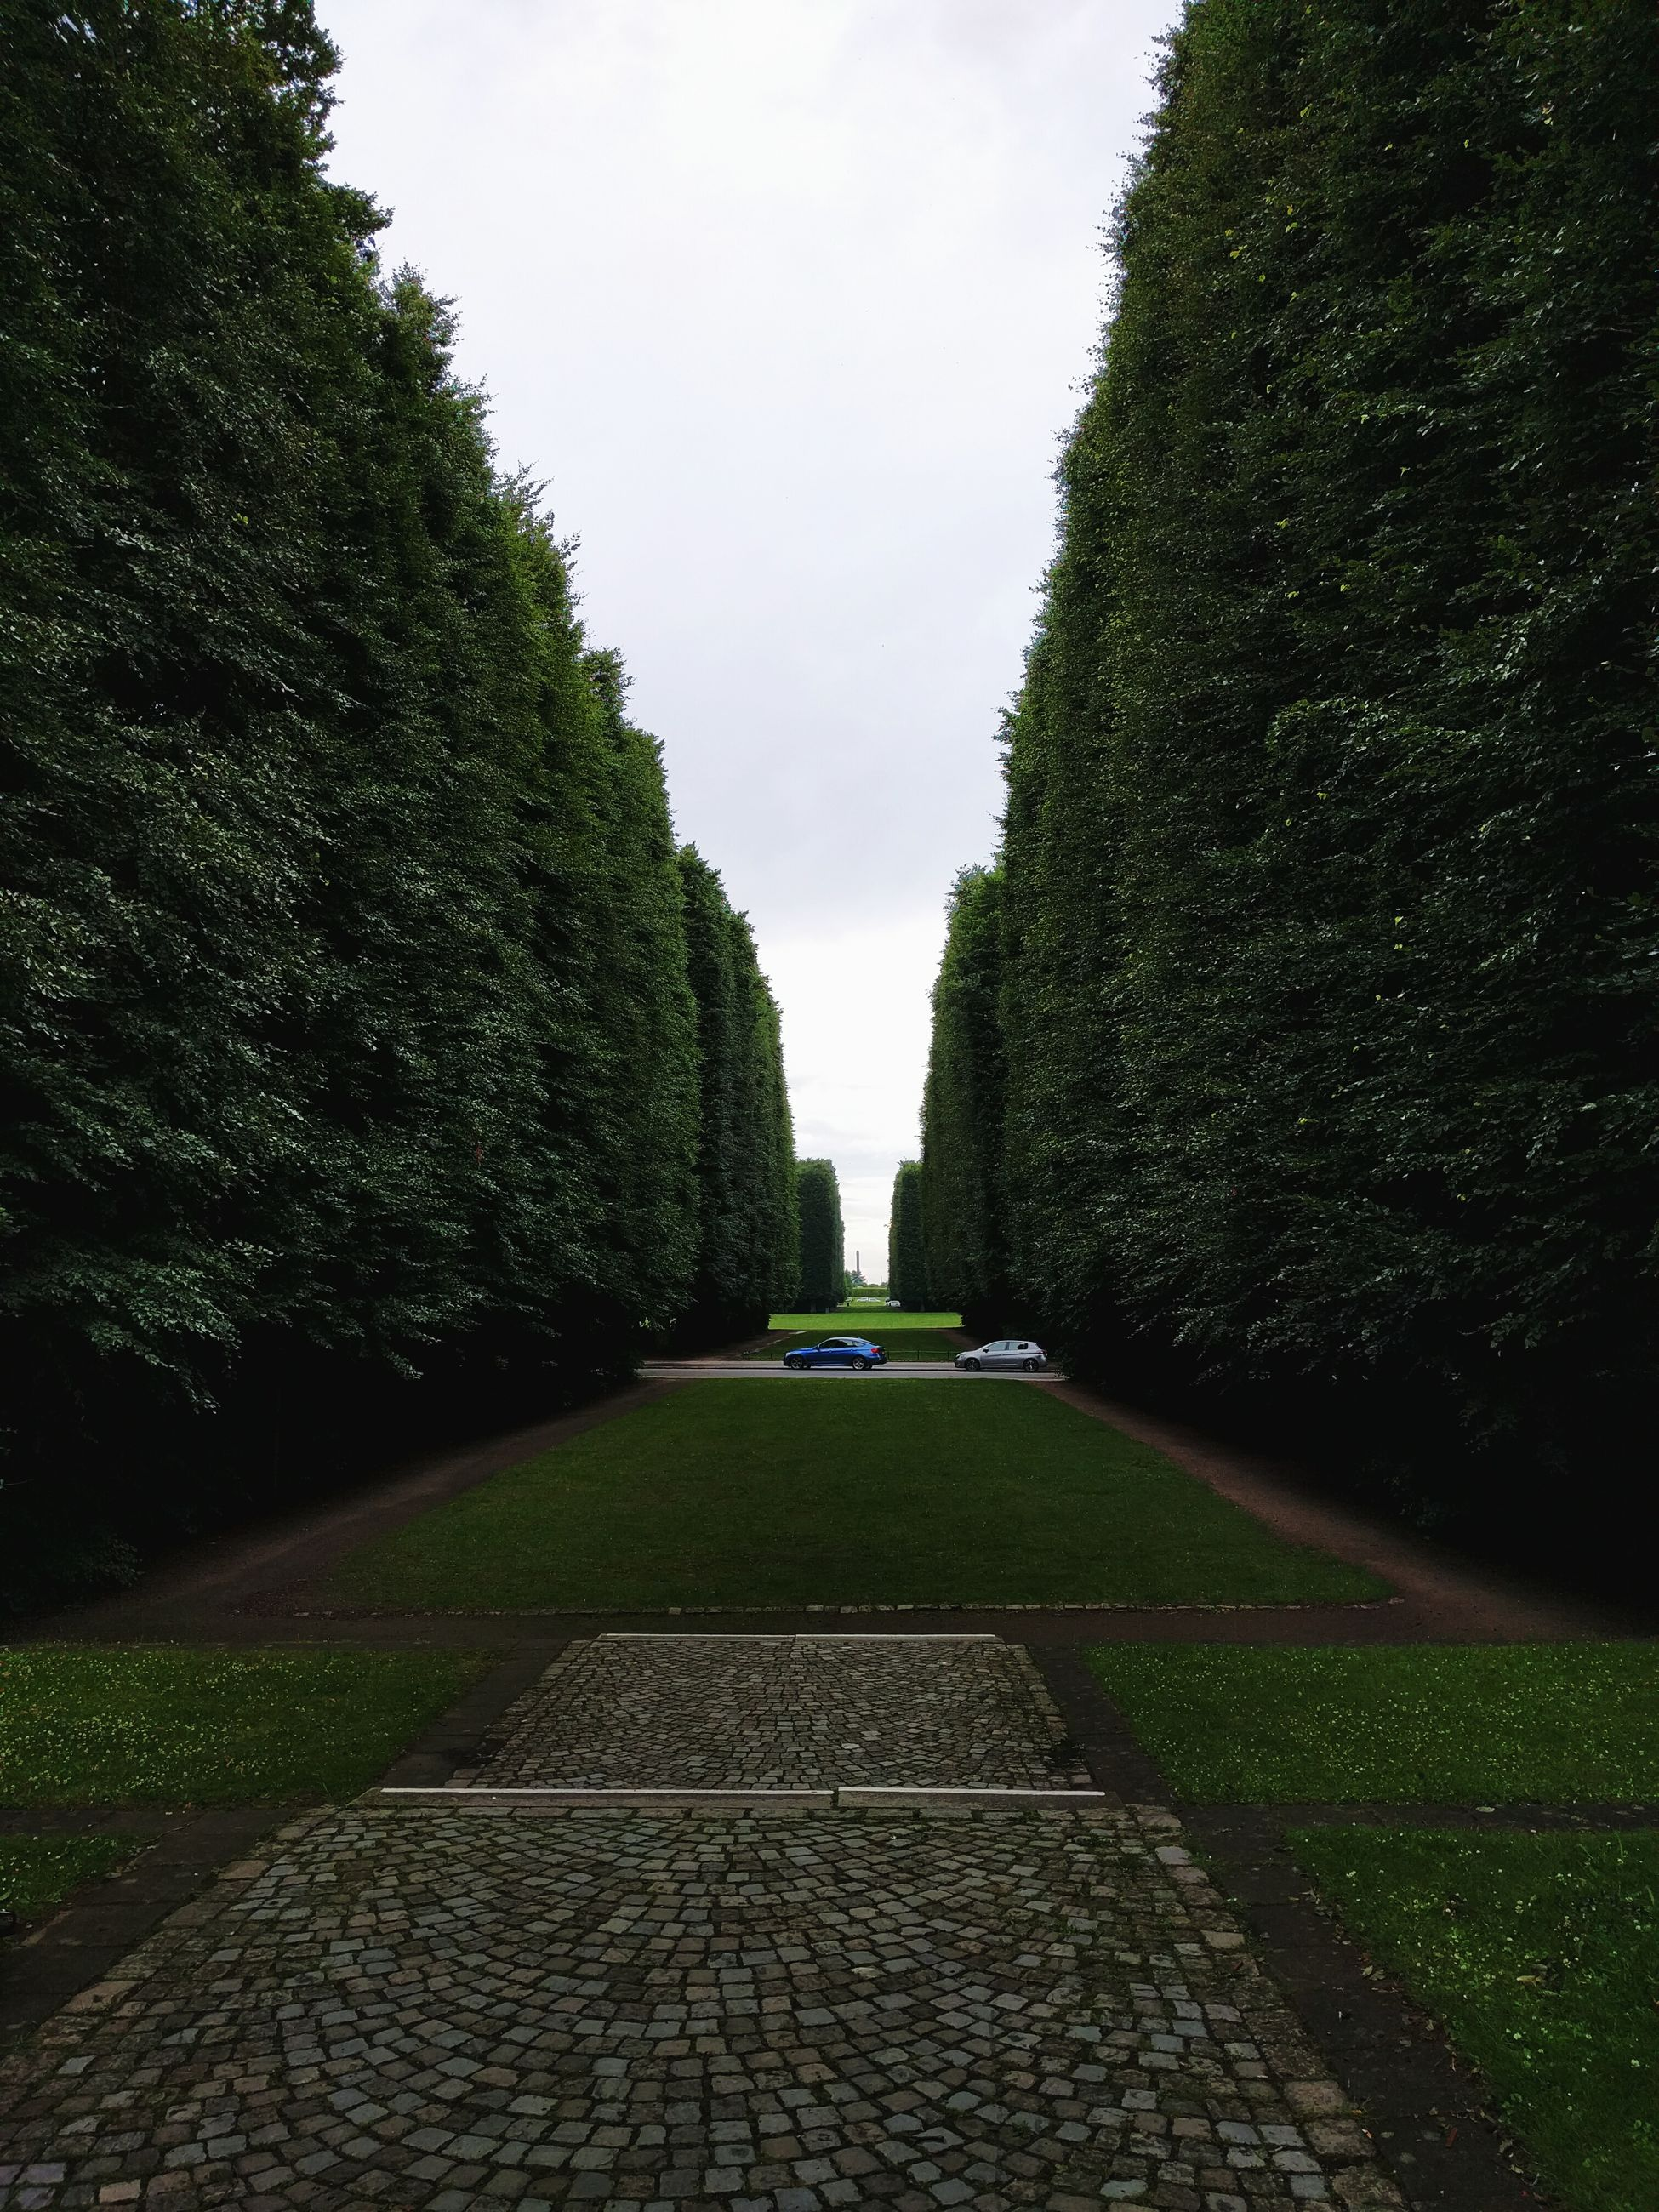 tree, the way forward, footpath, park - man made space, walkway, grass, formal garden, sky, green color, growth, pathway, diminishing perspective, park, nature, tranquility, day, outdoors, plant, empty, no people, lawn, travel destinations, tranquil scene, vanishing point, green